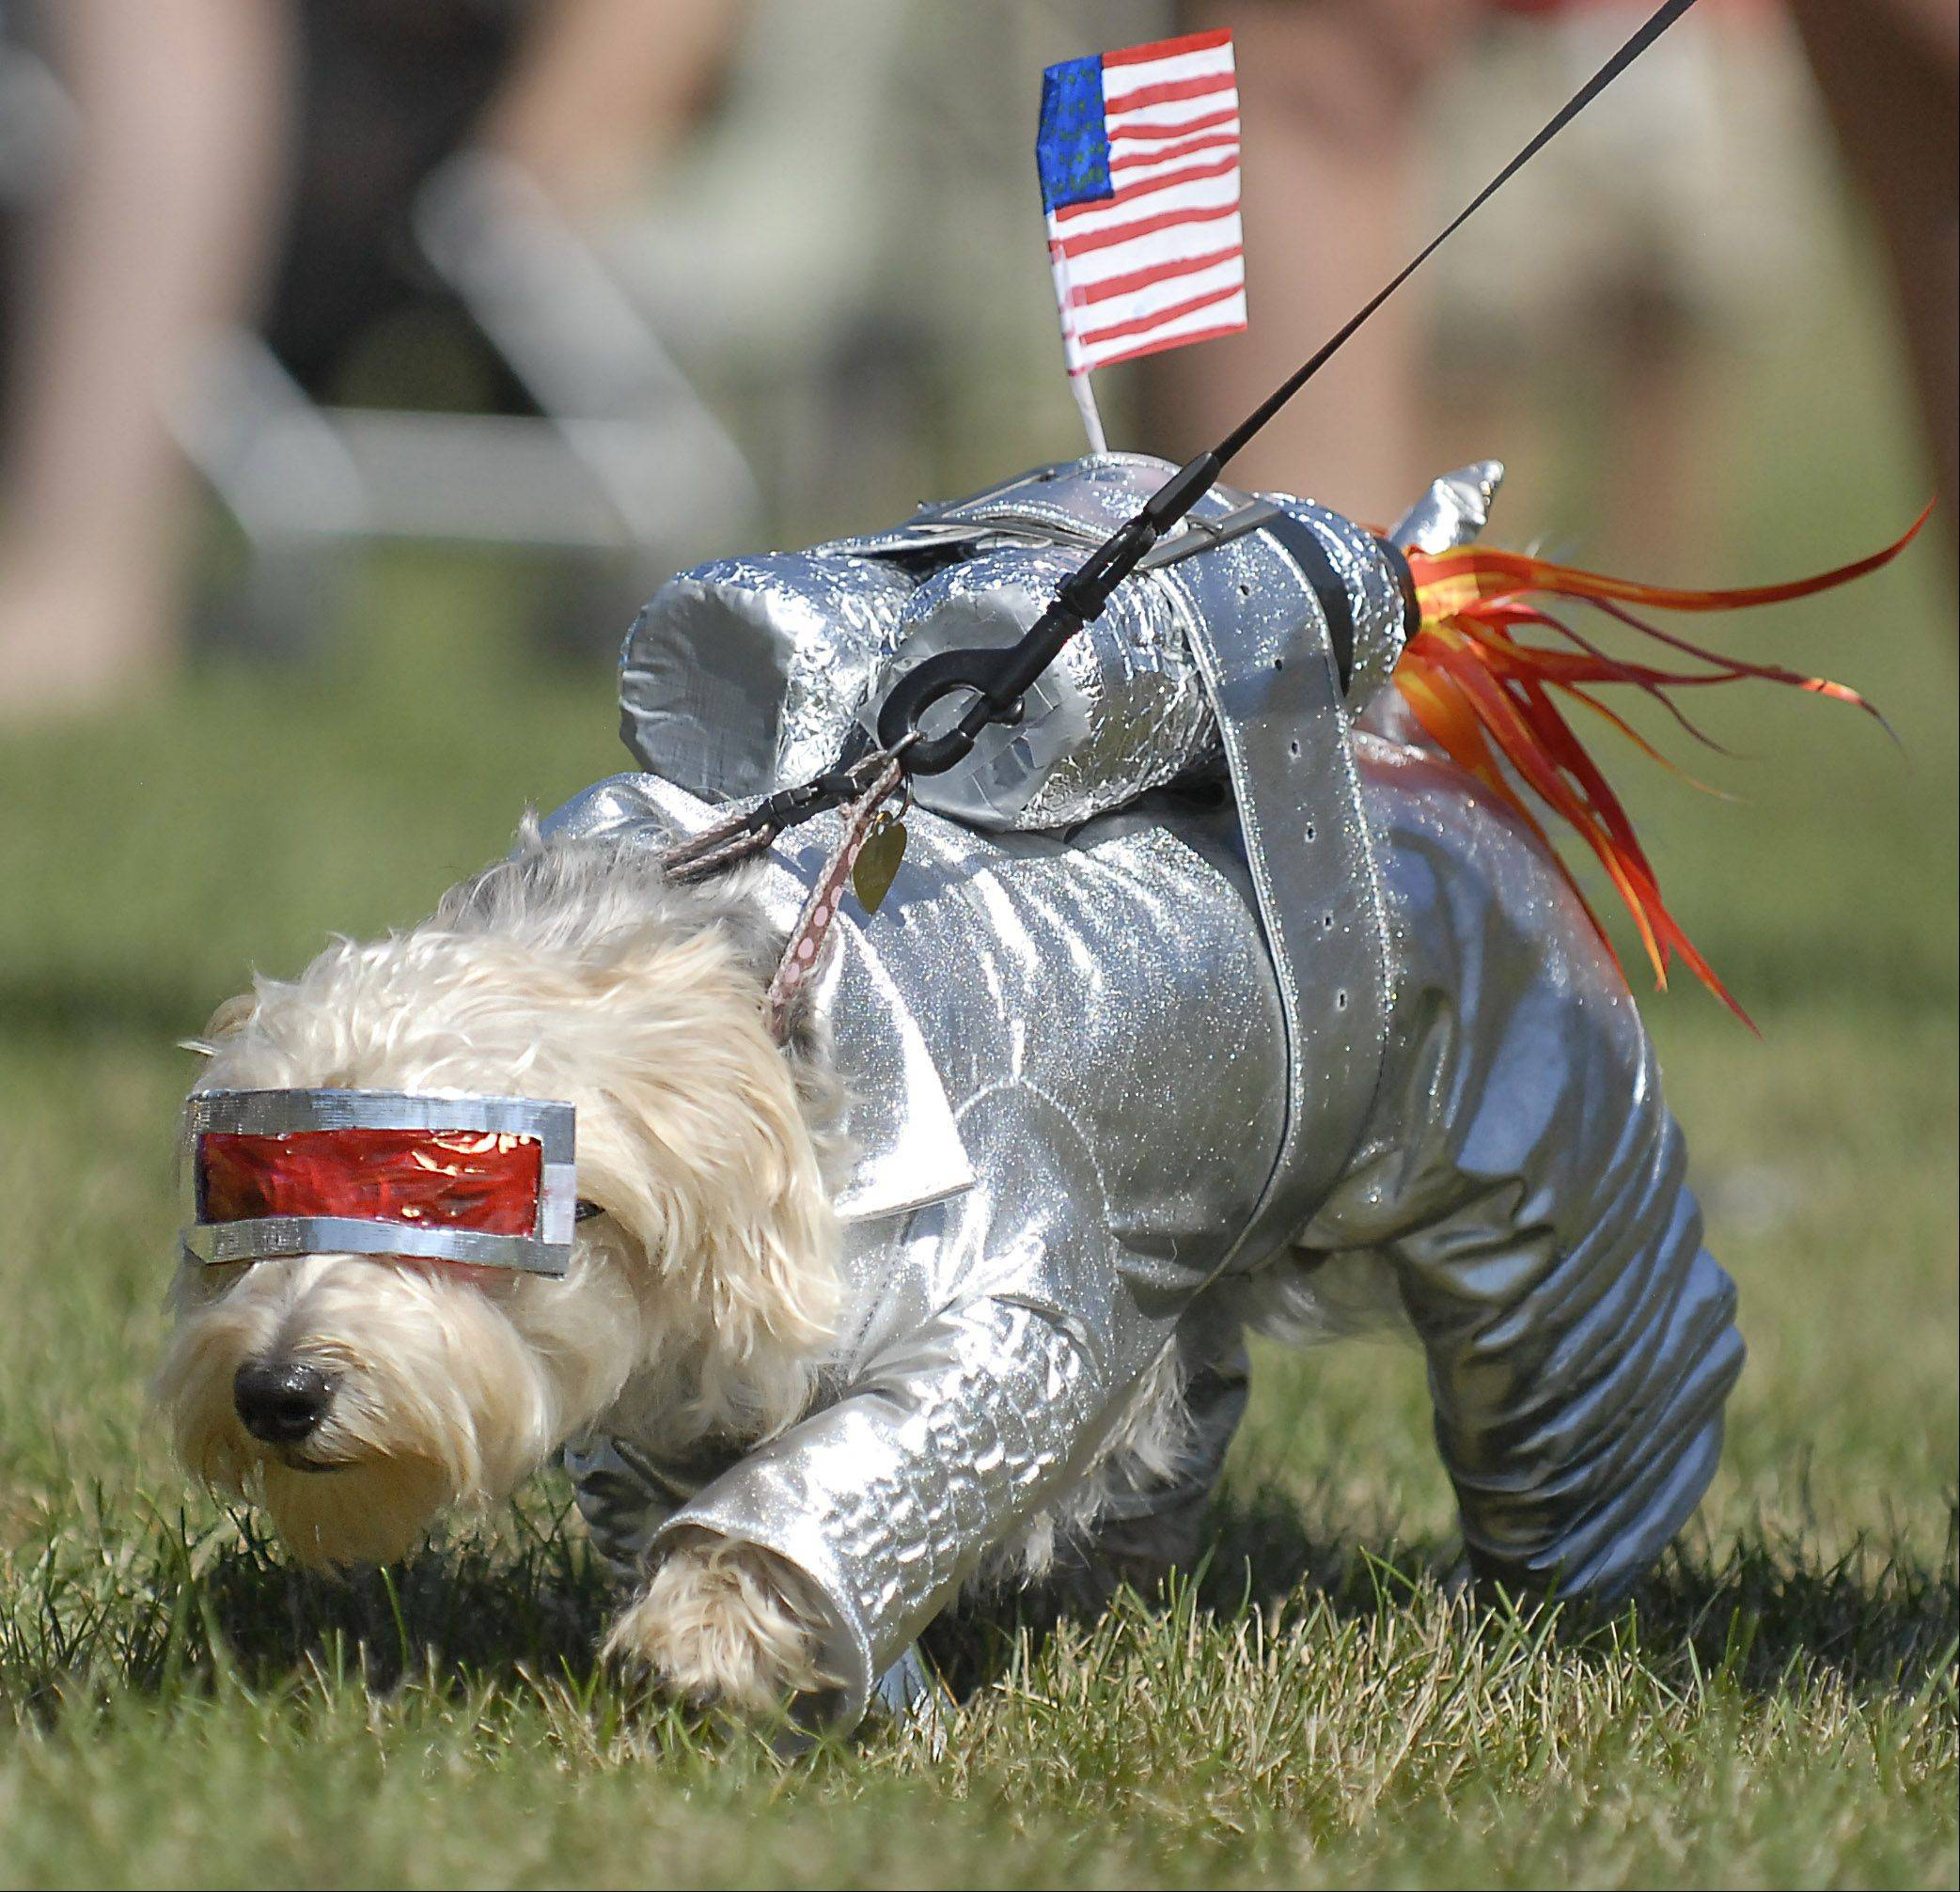 Teddie (cq) Bear, 3, owned by Rachel Beech, 11, of Algonquin takes first place in the Best Costume category for his homemade astronaut suit at Algonquin Founders' Days on Friday, July 27. This is Teddie's second year appearing in the dog and cat show at the festival.